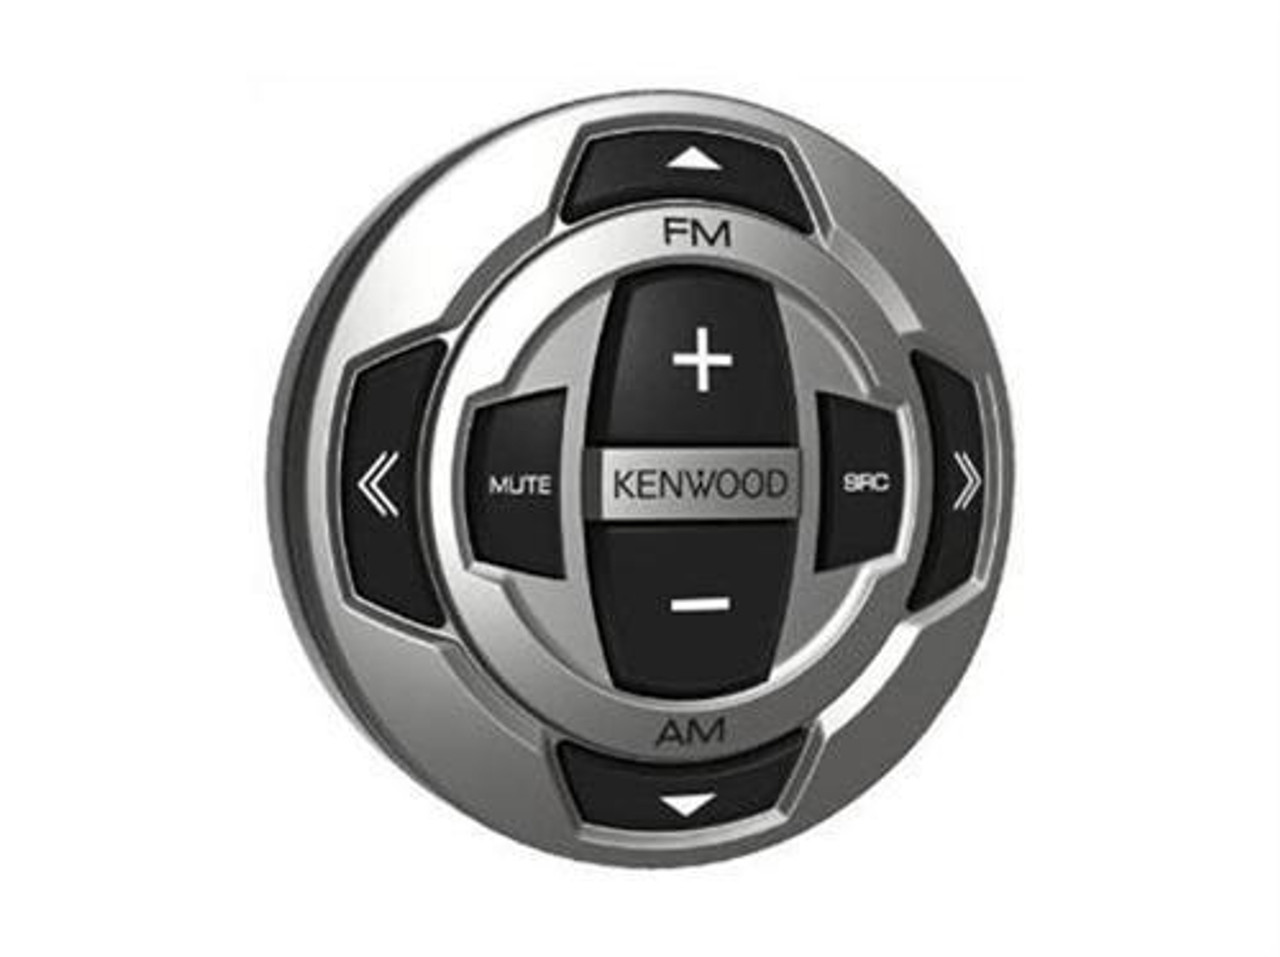 [DIAGRAM_09CH]  KCA-RC35MR Kenwood Wired Remote for KMR330 KMR350U, KMR355U, KMR550U, KMR-D358,  KMR555U and KMR440U - Road Entertainment | Kenwood Kmr 550u Wiring Diagram |  | Road Entertainment